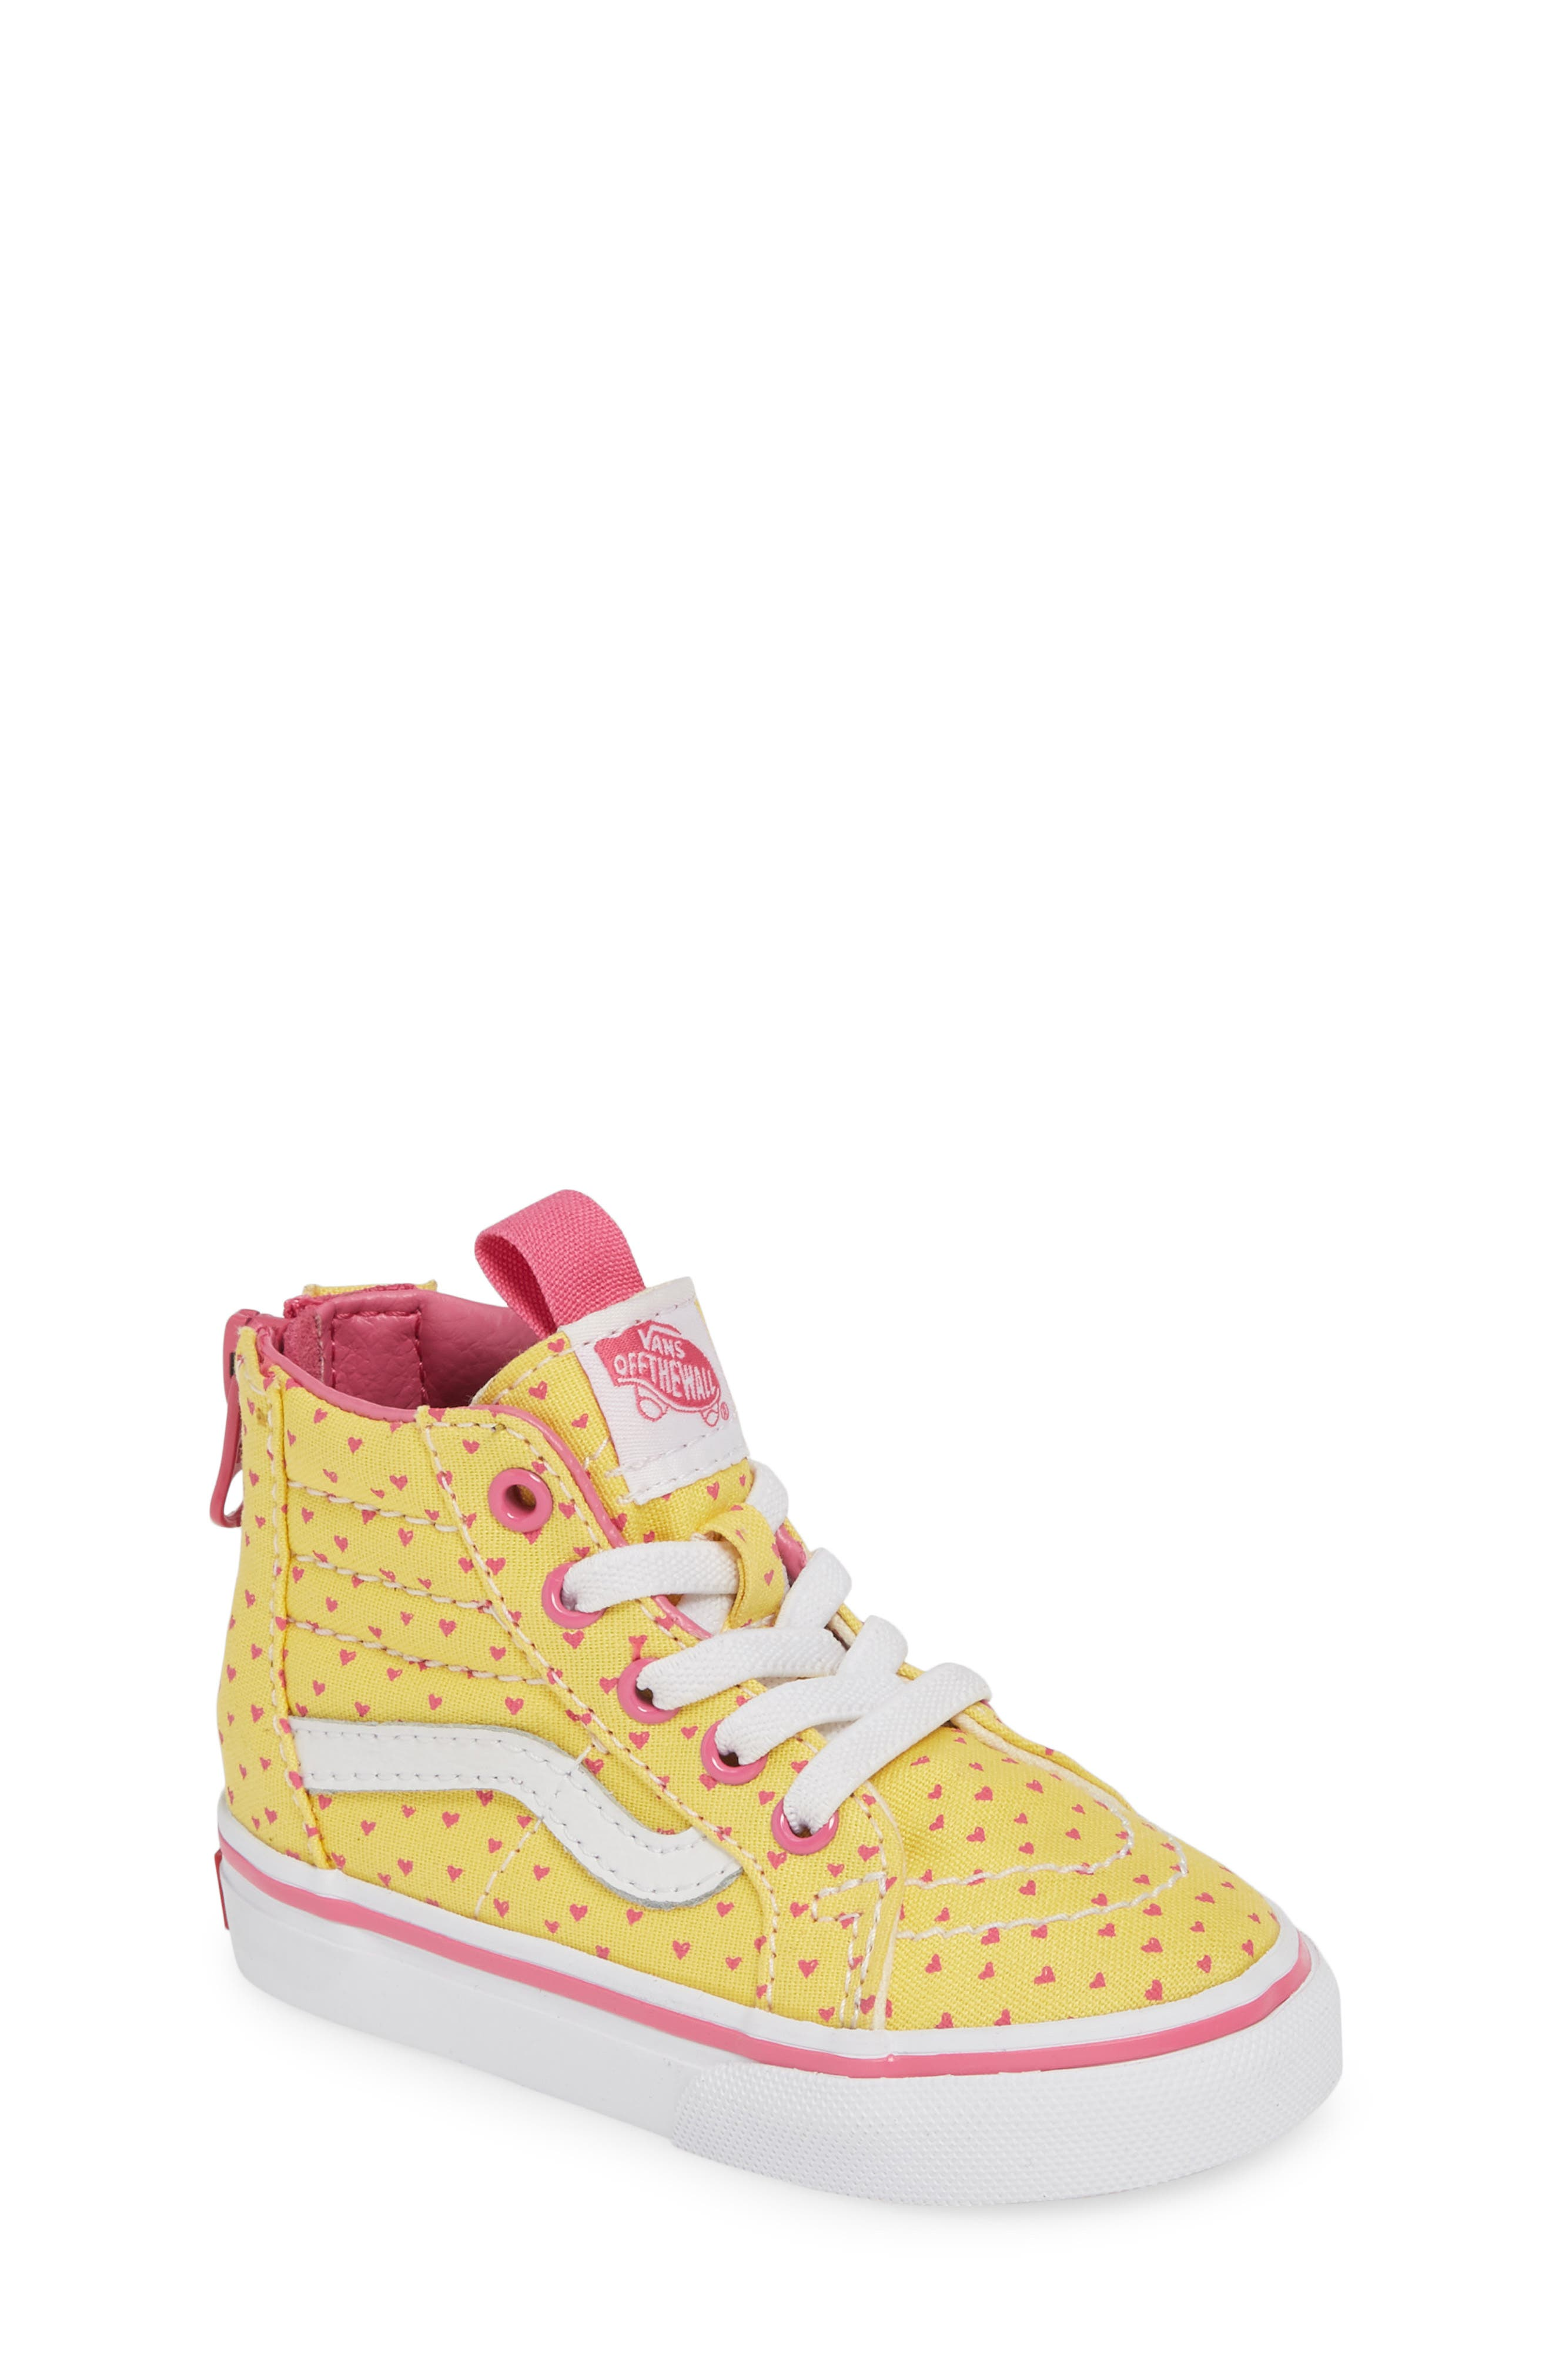 4c2fbed73e99 Vans - Girls Sneakers   Athletic Shoes - Kids  Shoes and Boots to ...